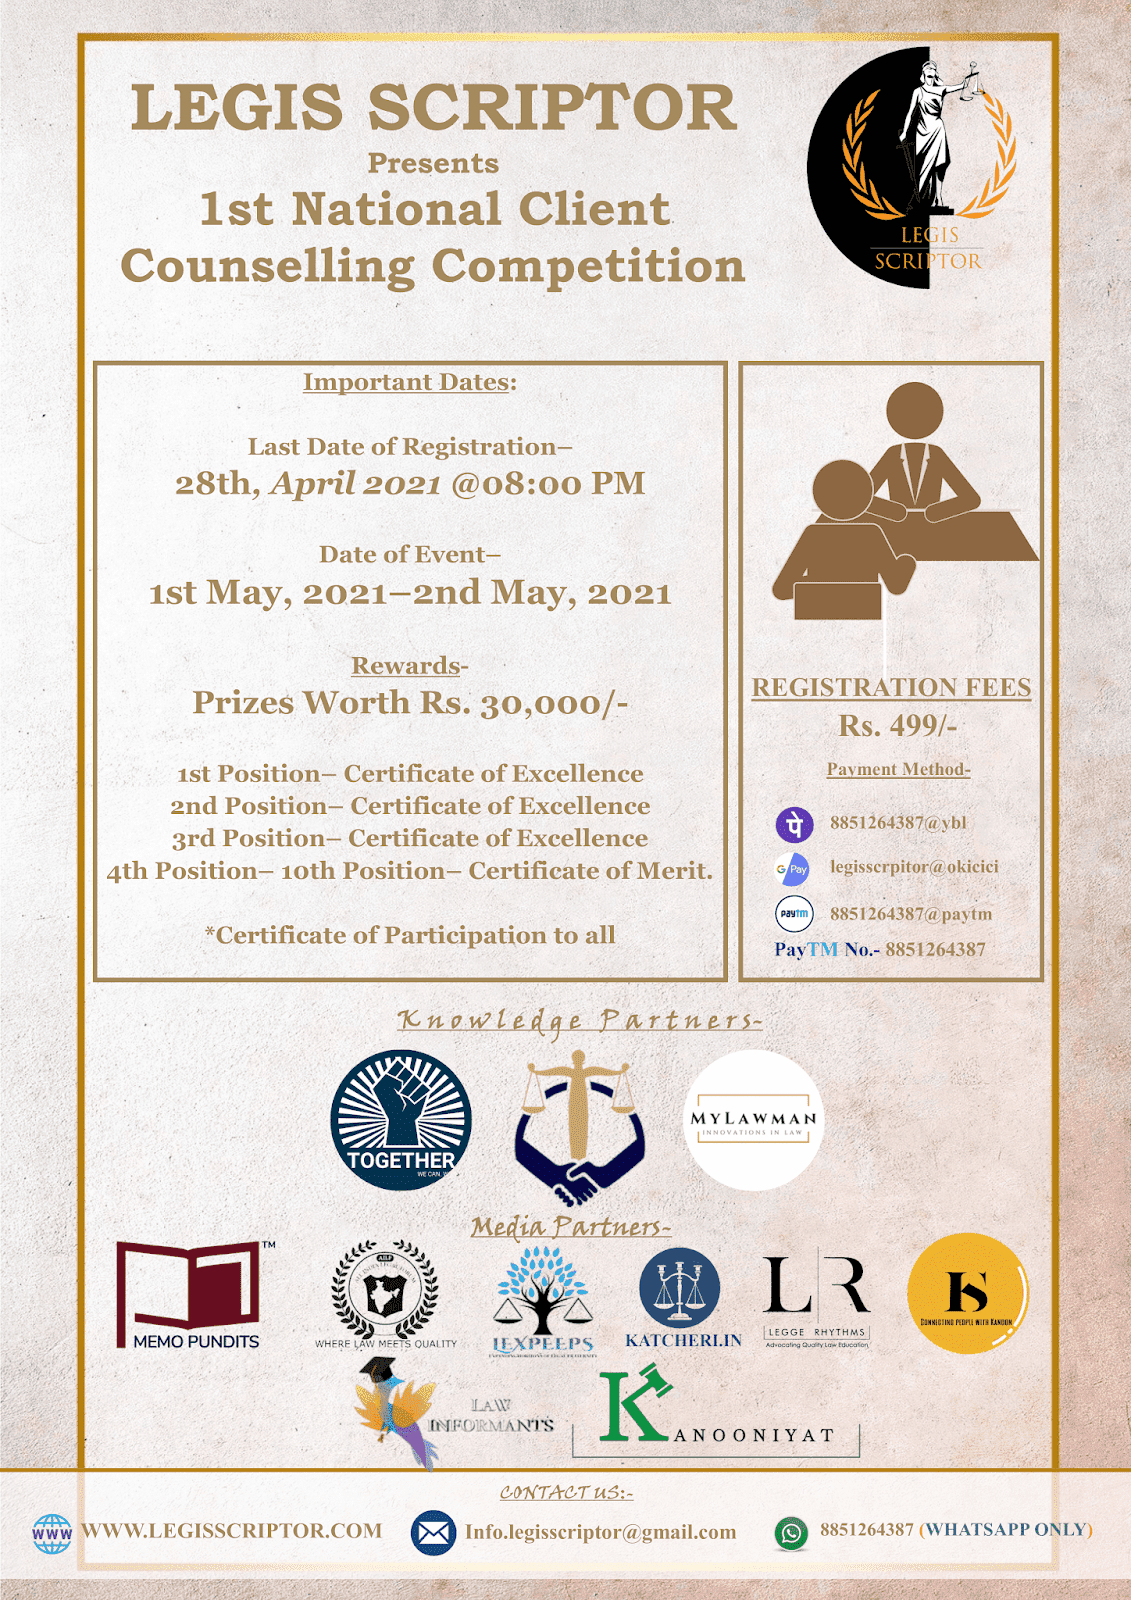 Register for 1st National Client Counselling Competition by Legis Scriptor by 28 April 2021